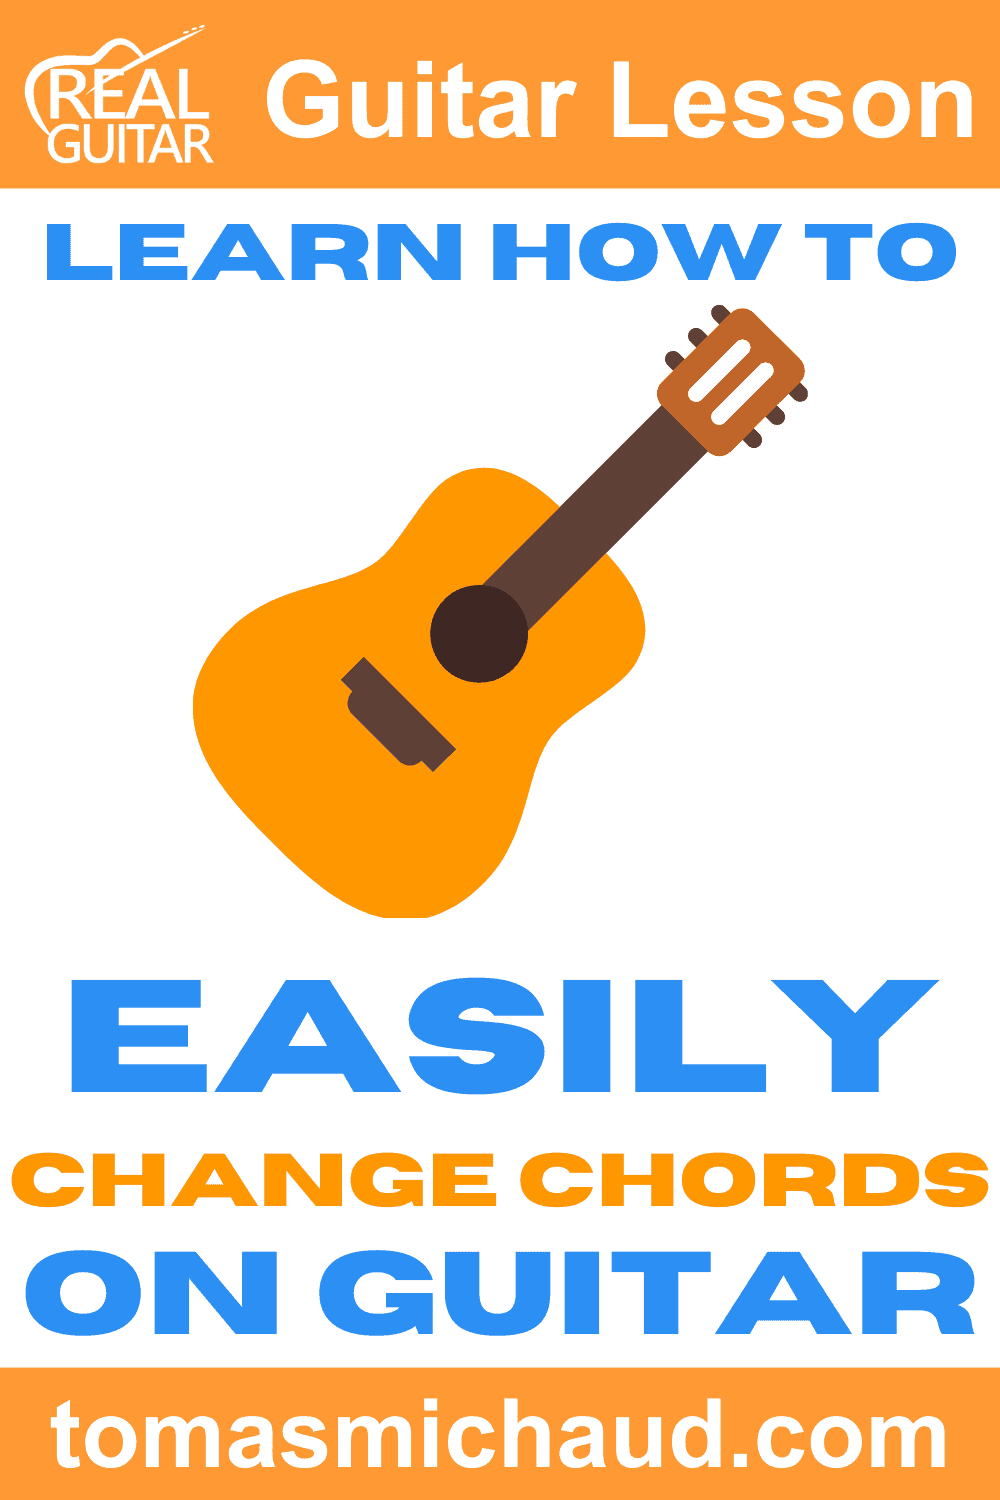 Learn How To Easily Change Chords On Guitar